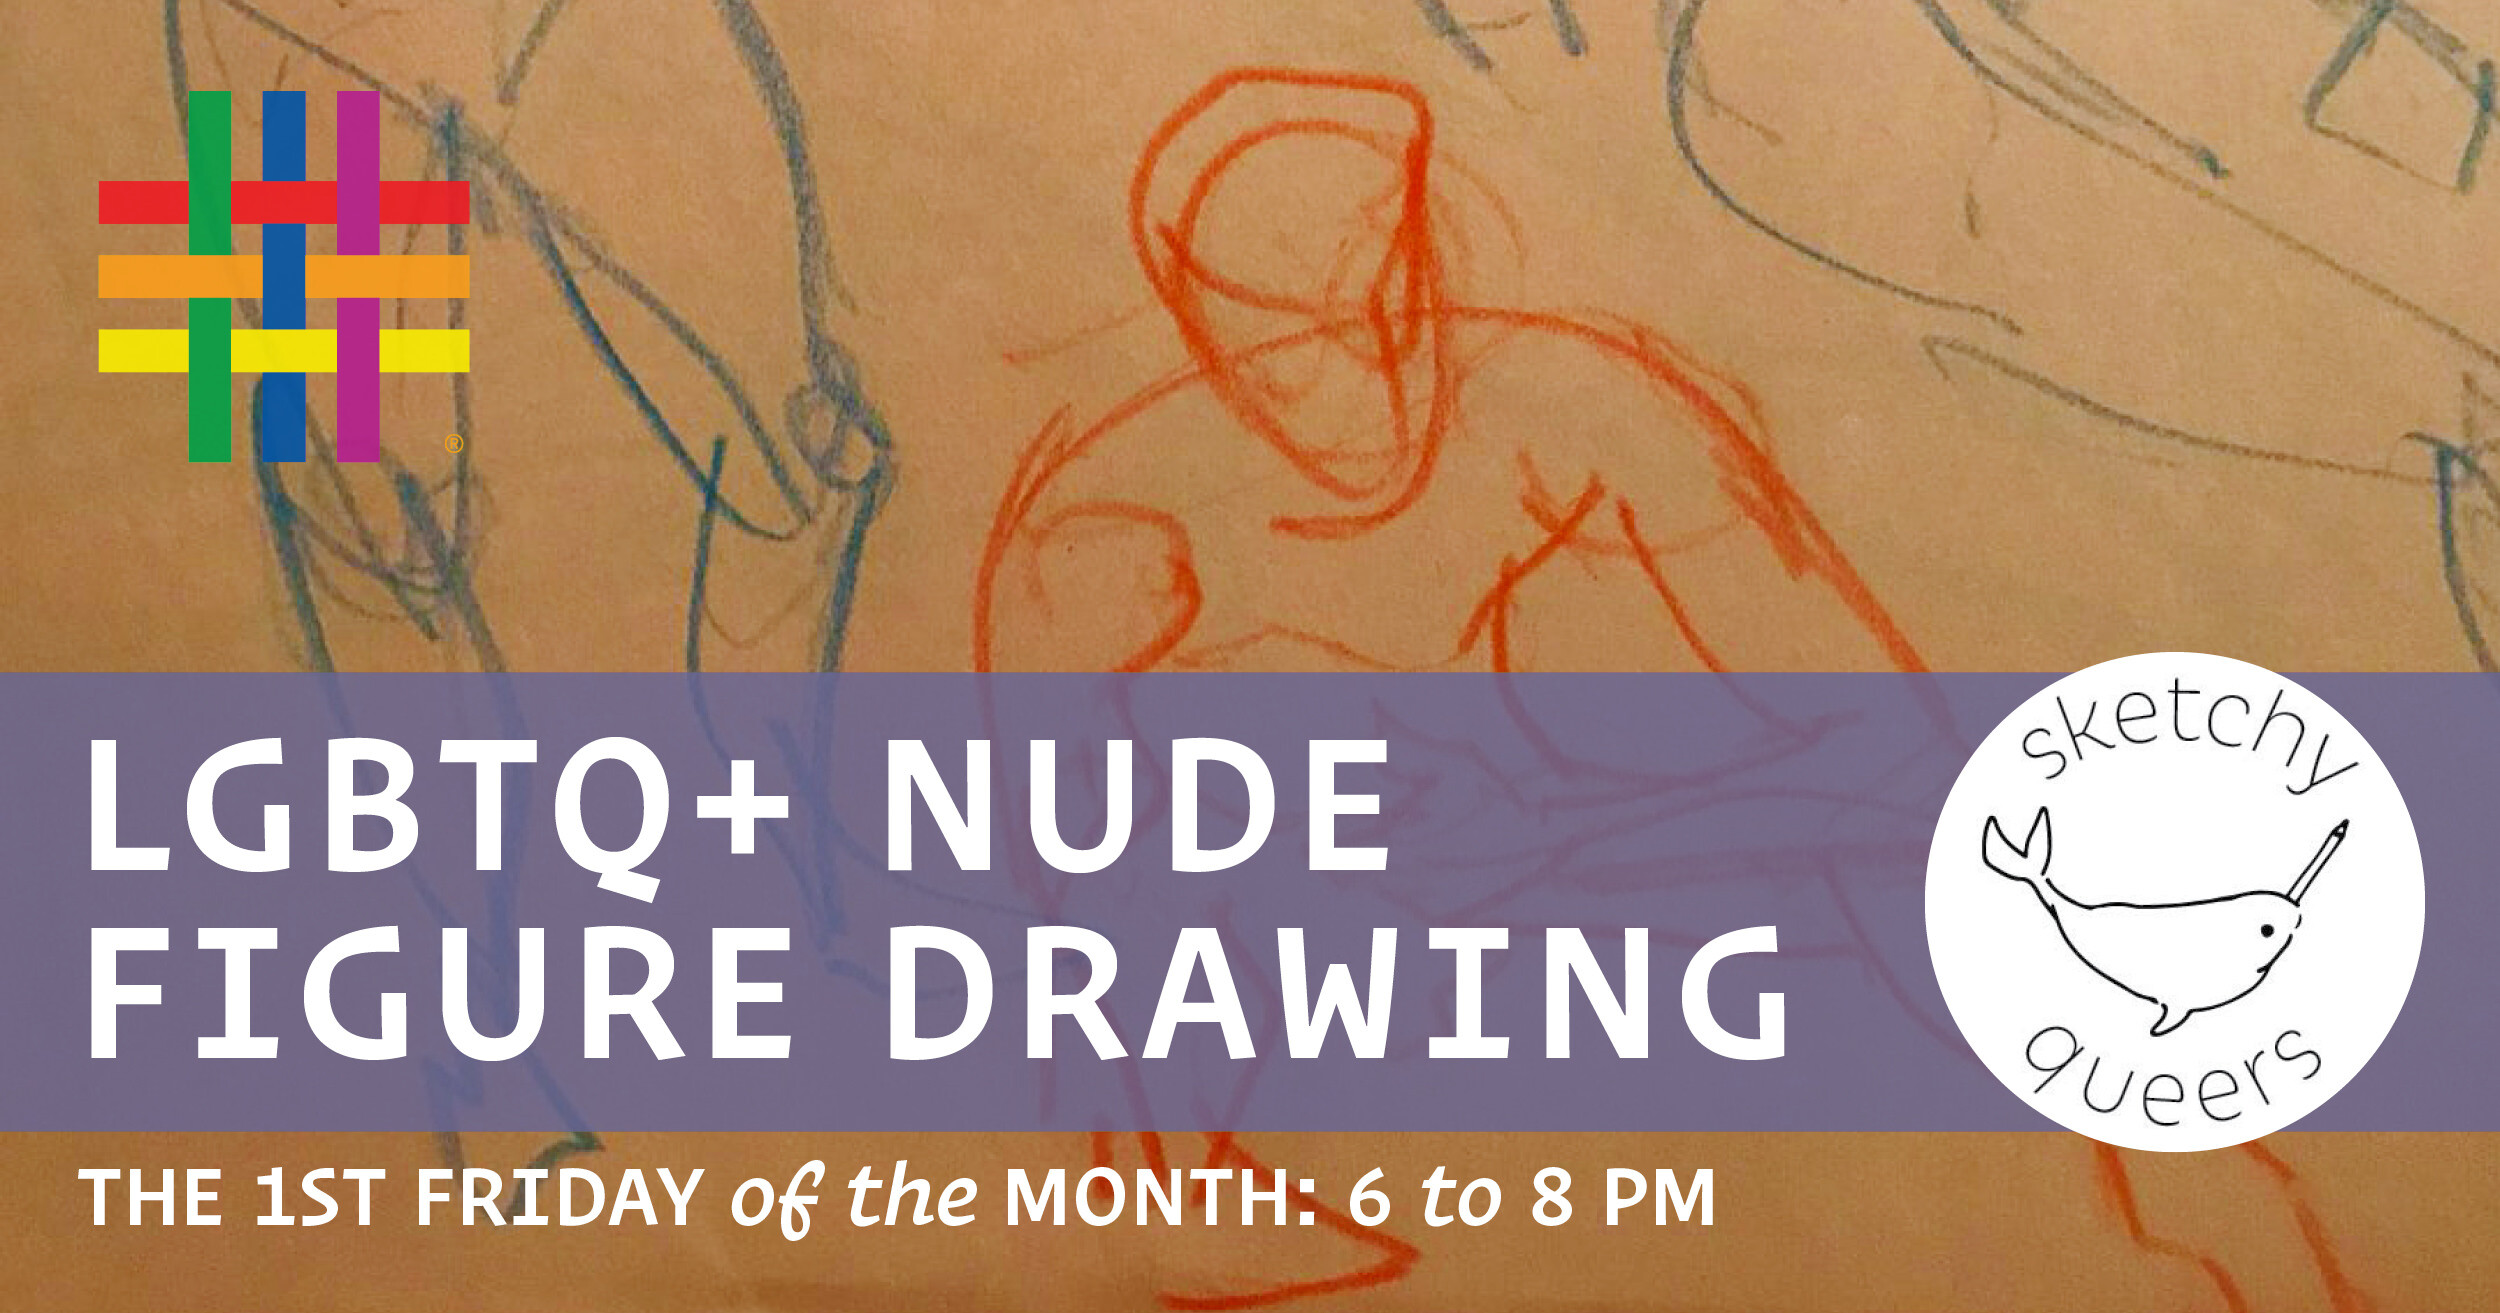 LGBTQ+ Nude Figure Drawing at Brooklyn Community Pride Center